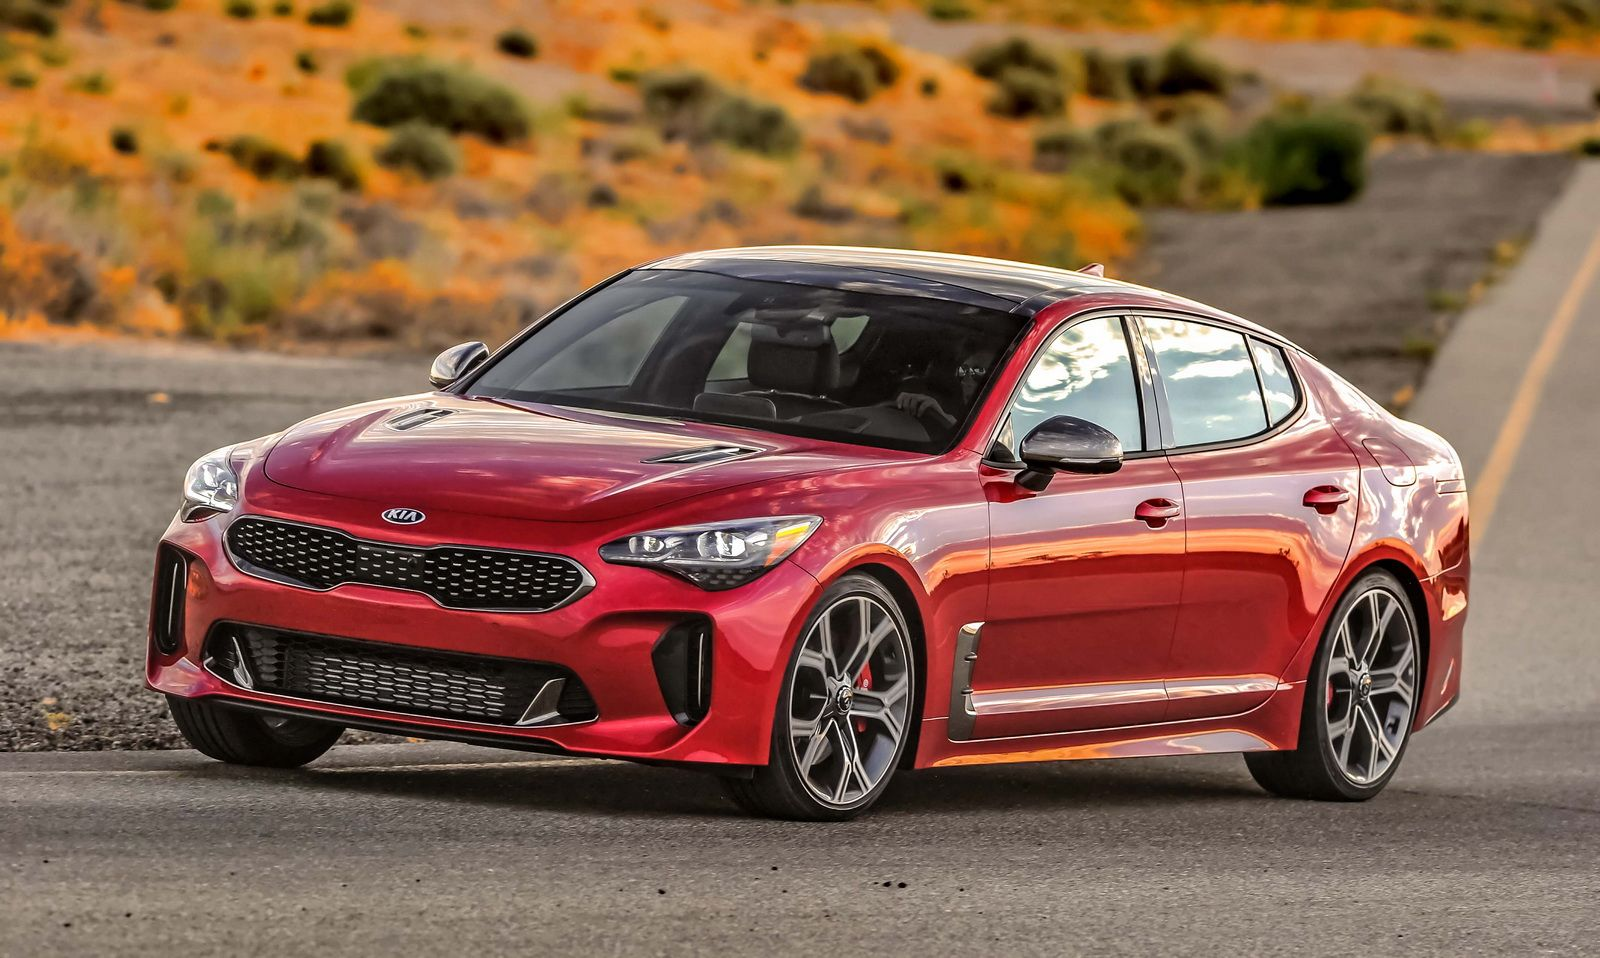 New Kia Stinger Undercuts Bmw 4 Series Gran Coupe S Price By Over 11 000 Carscoops In 2020 Kia Stinger Kia Optima Kia